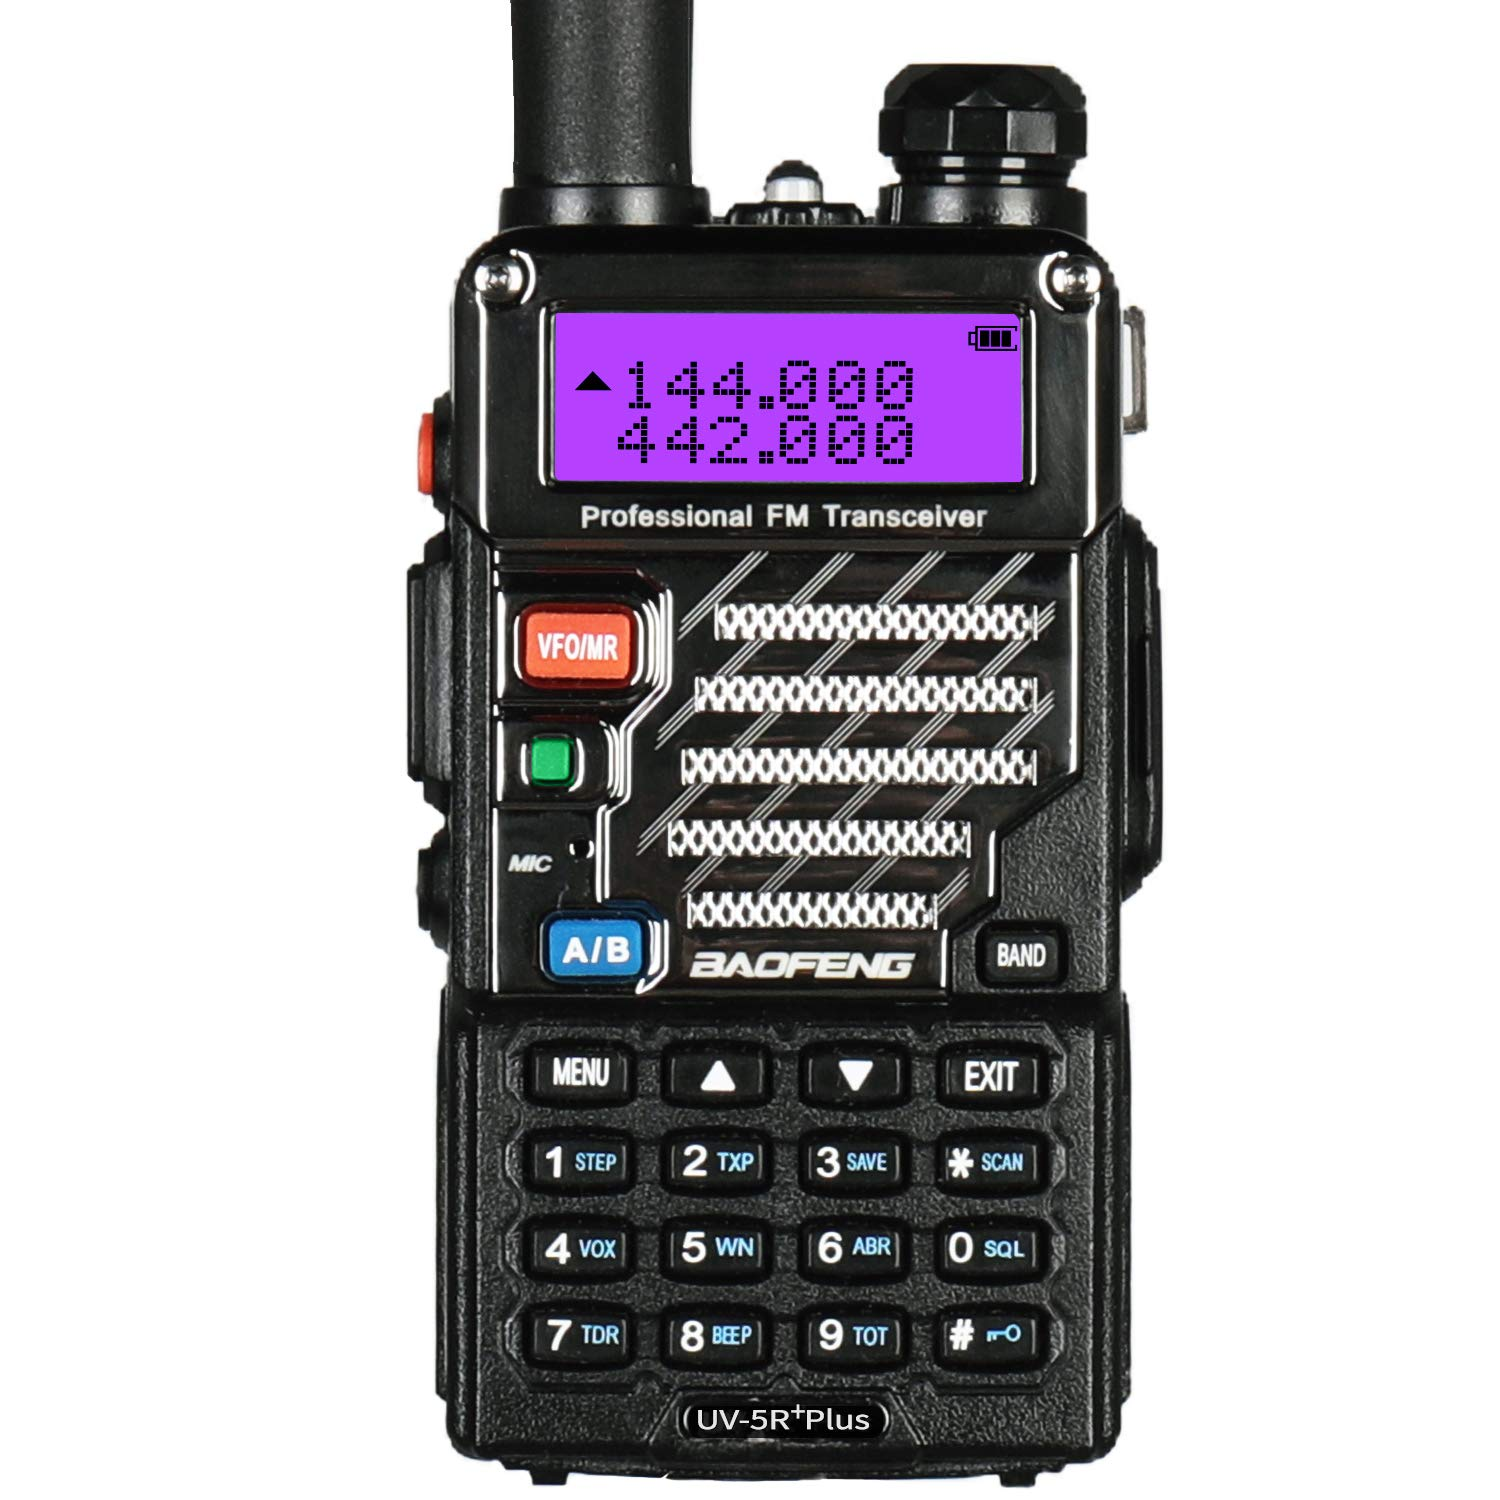 Baofeng UV-5R+ Plus UHF VHF Long Range Dual Band Ham Amateur Two Way Radio, Black by BAOFENG